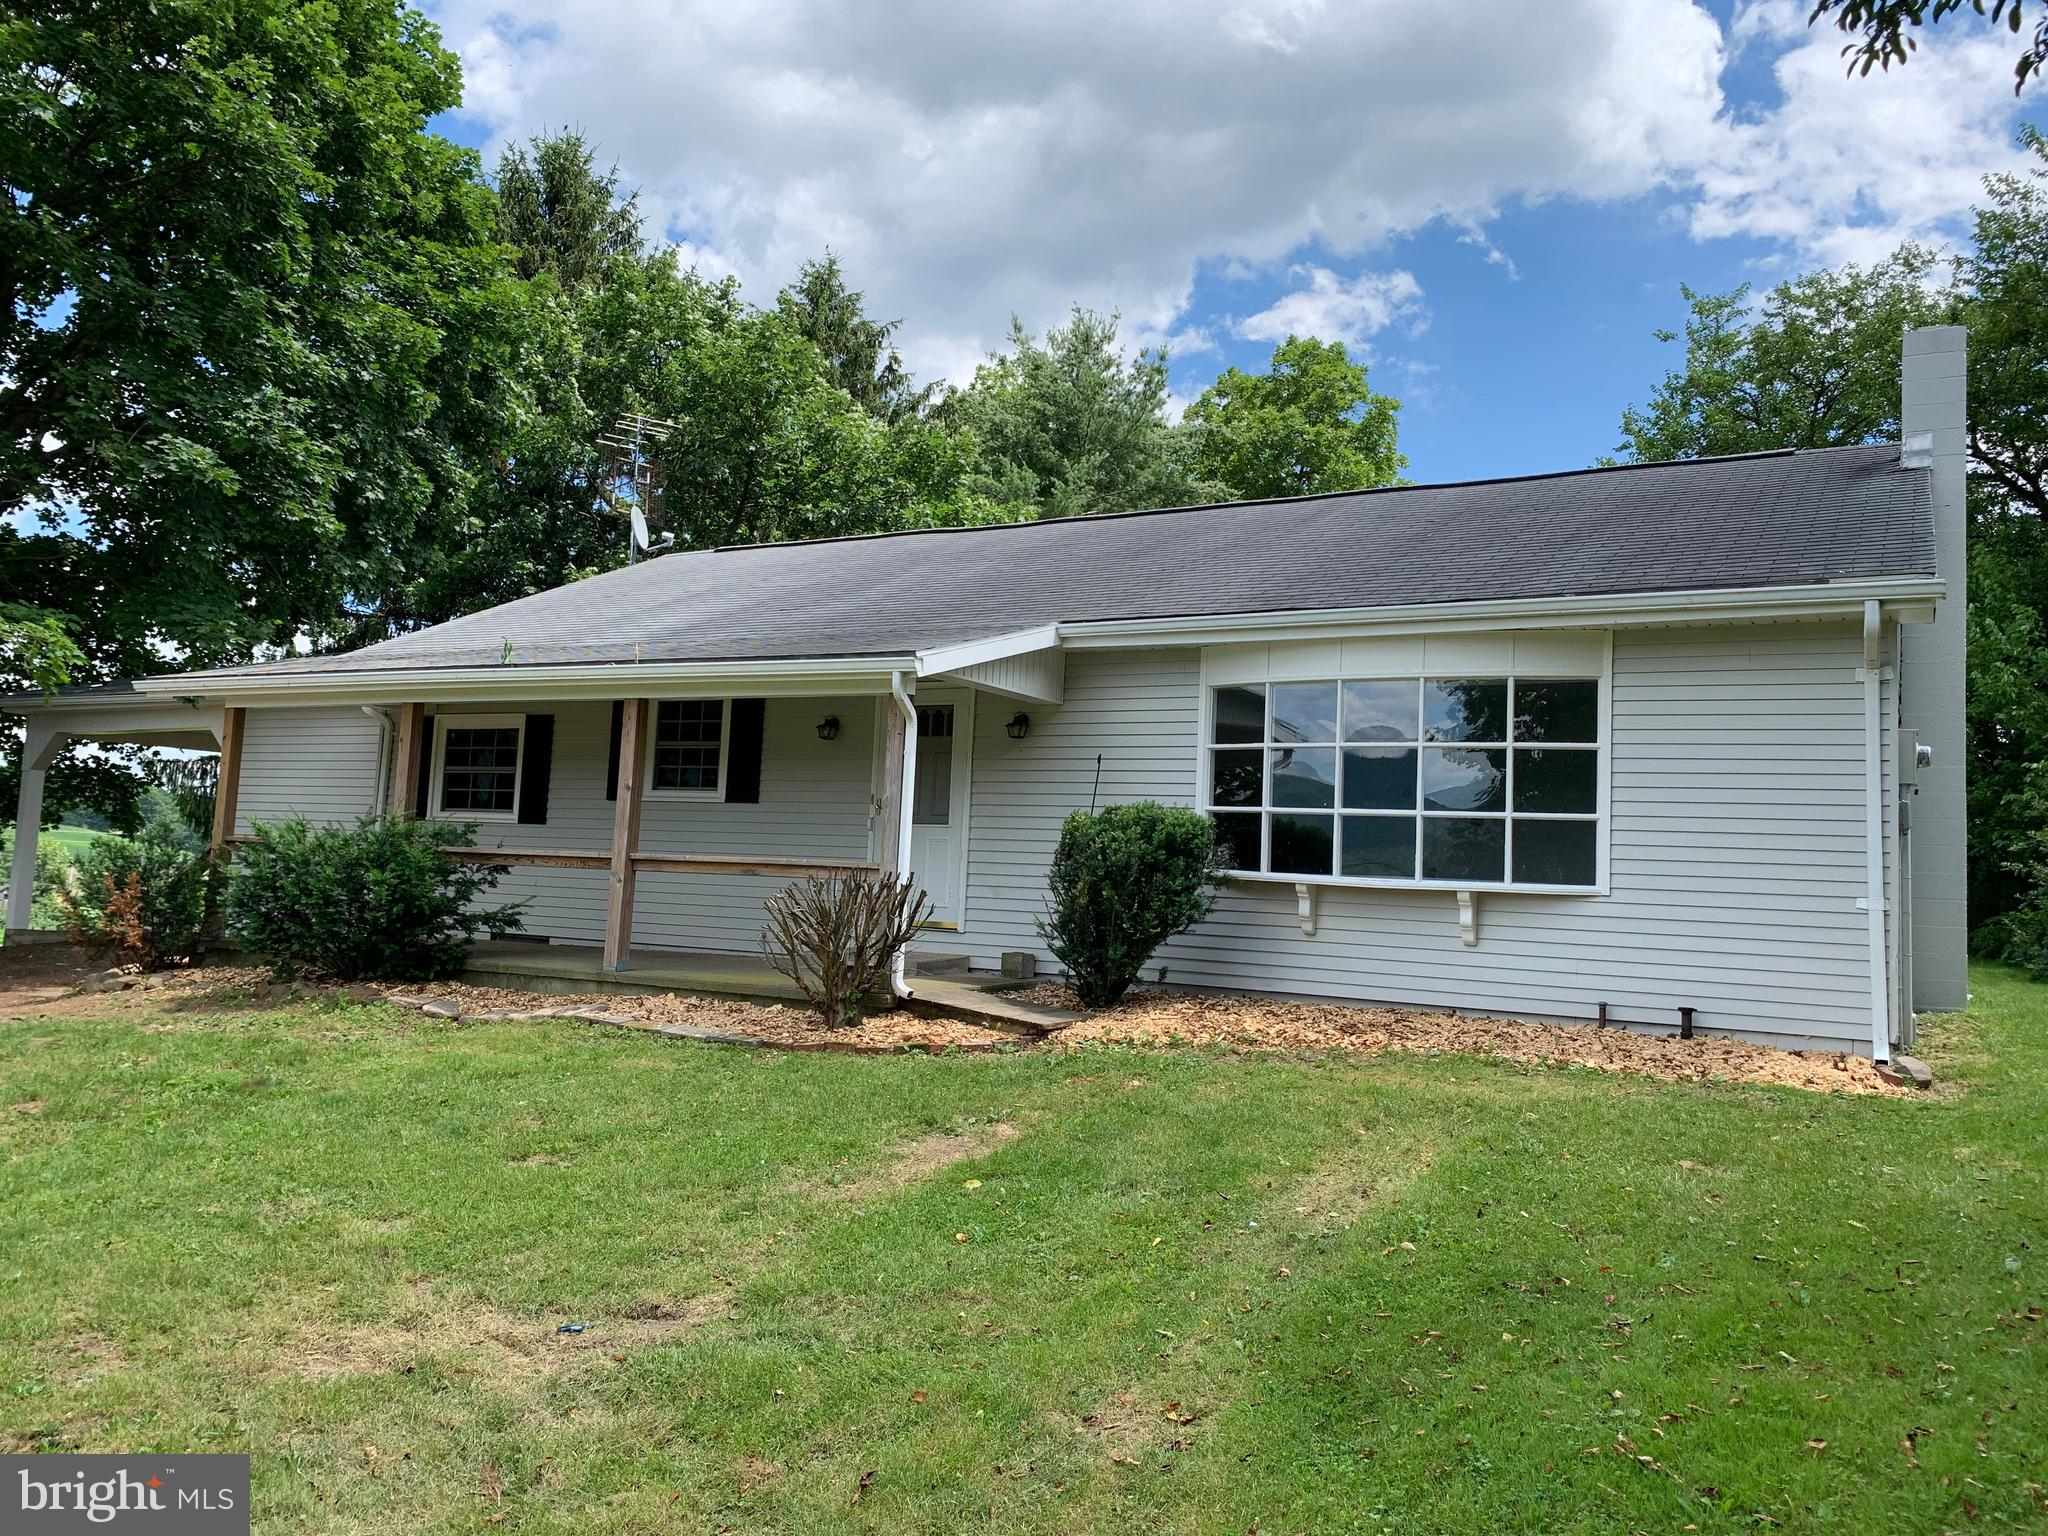 9116 STAGE ROAD, MCCLURE, PA 17841